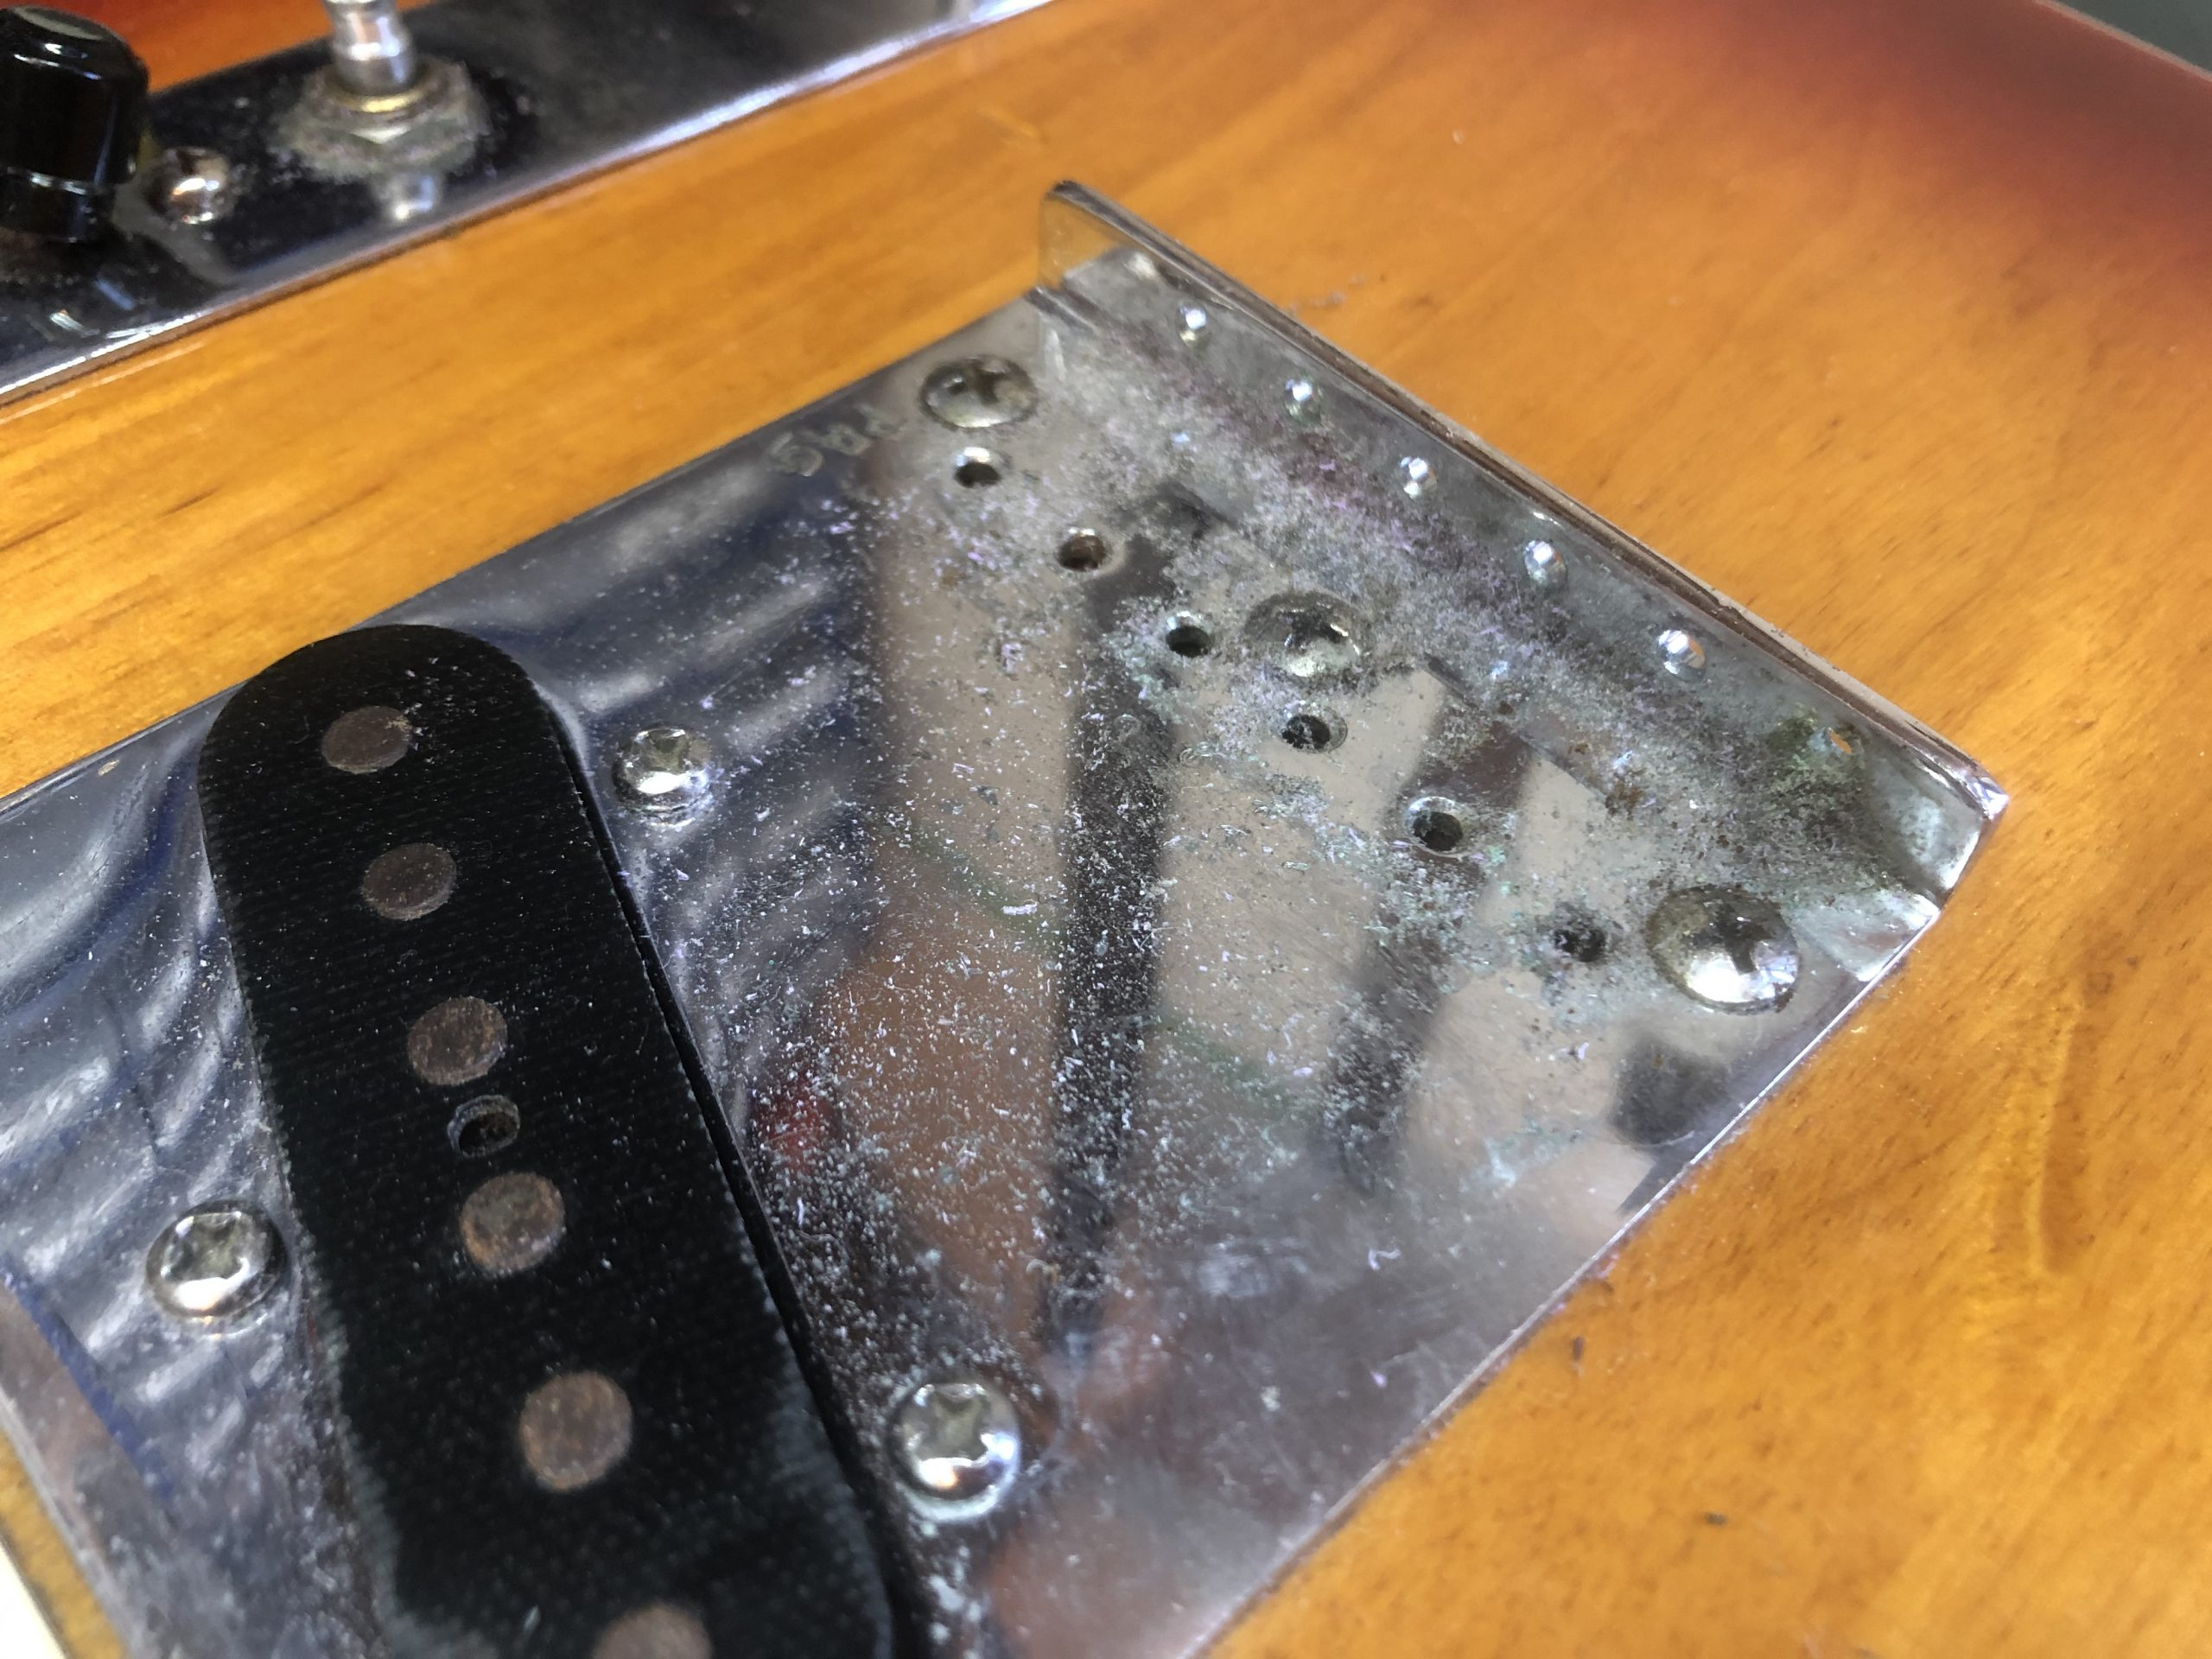 Cleaning hardware